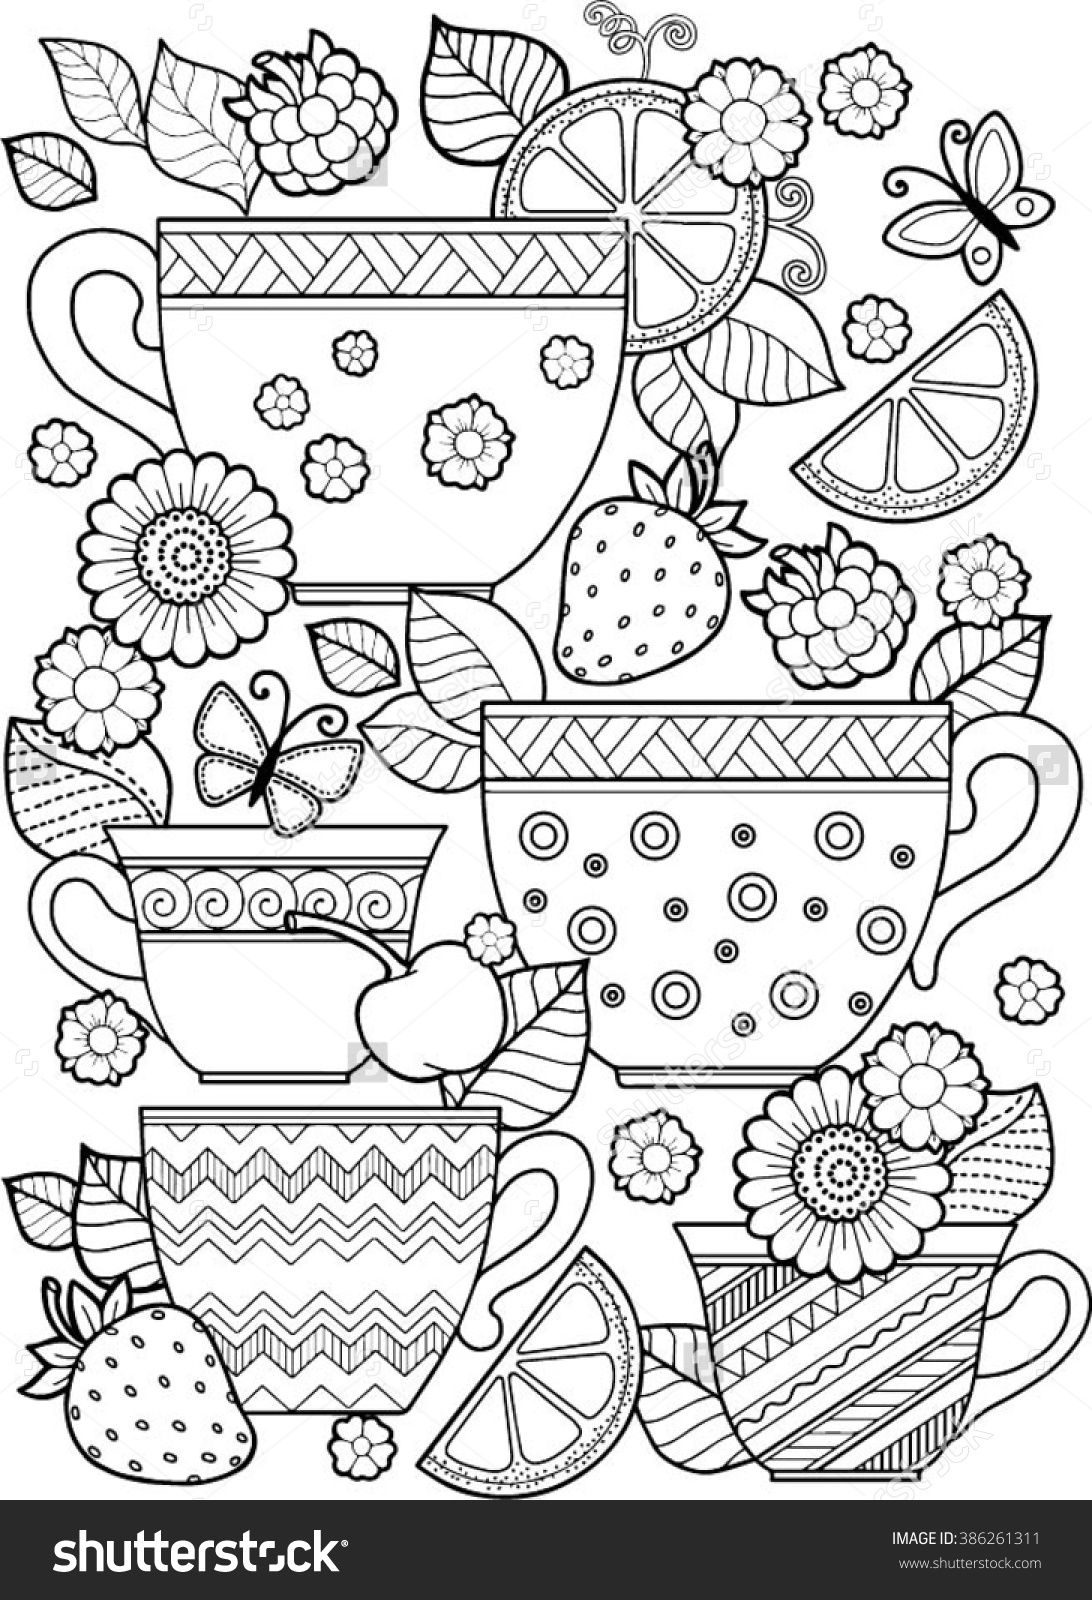 1092x1600 Hand Draw Vector Coloring Book For Adult. Teatime. Cups Of Tea